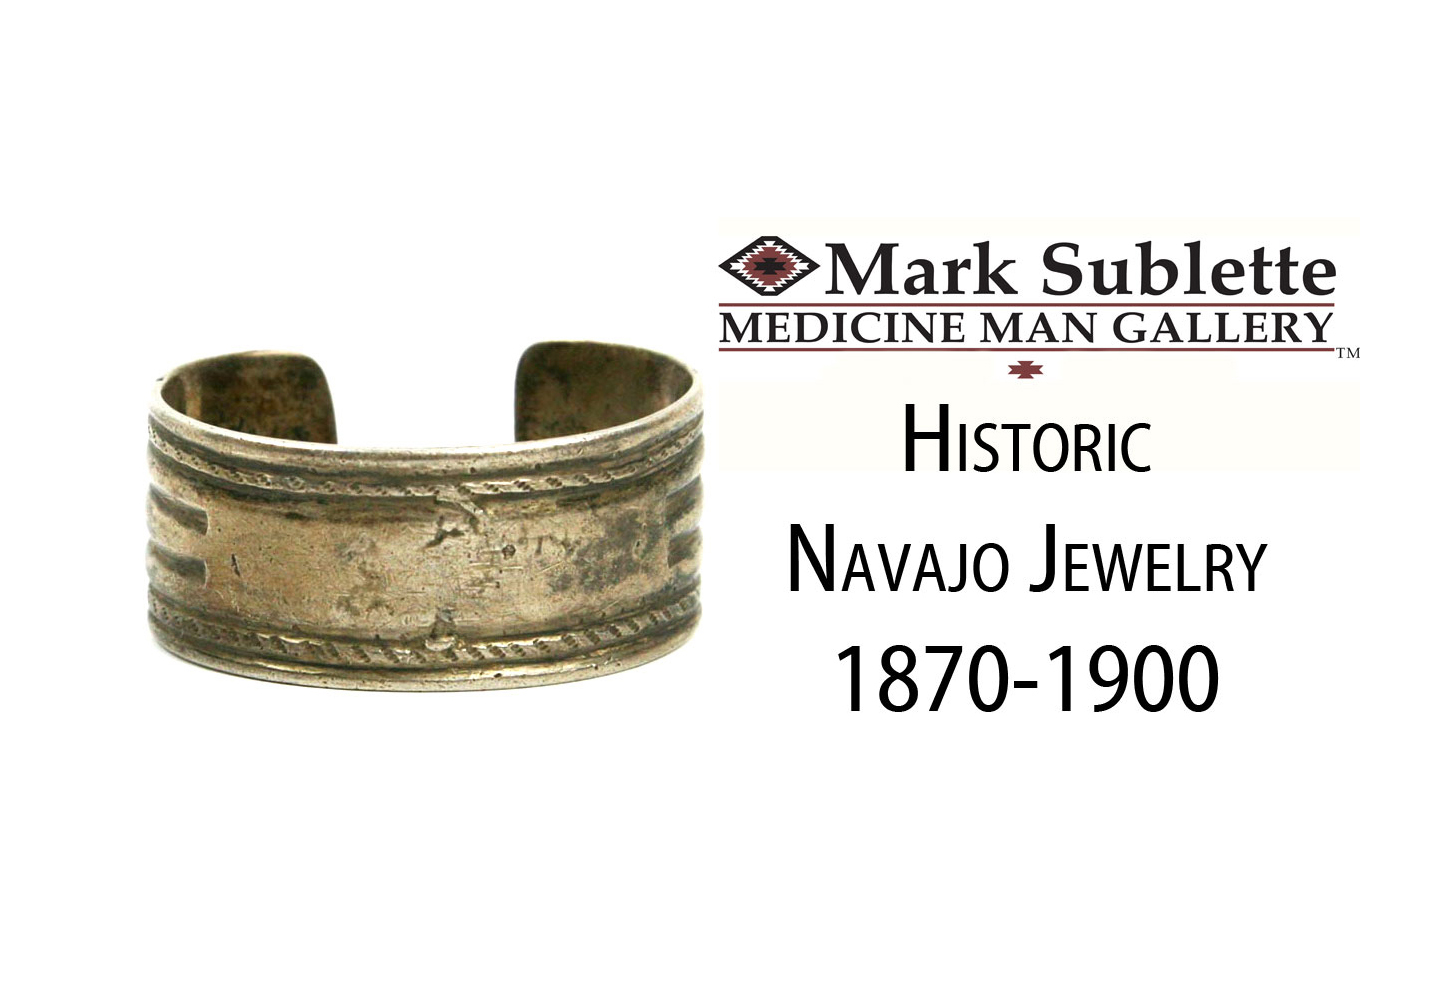 Native American Indian Jewelry: How to identify and date Navajo bracelets from 1870-1900